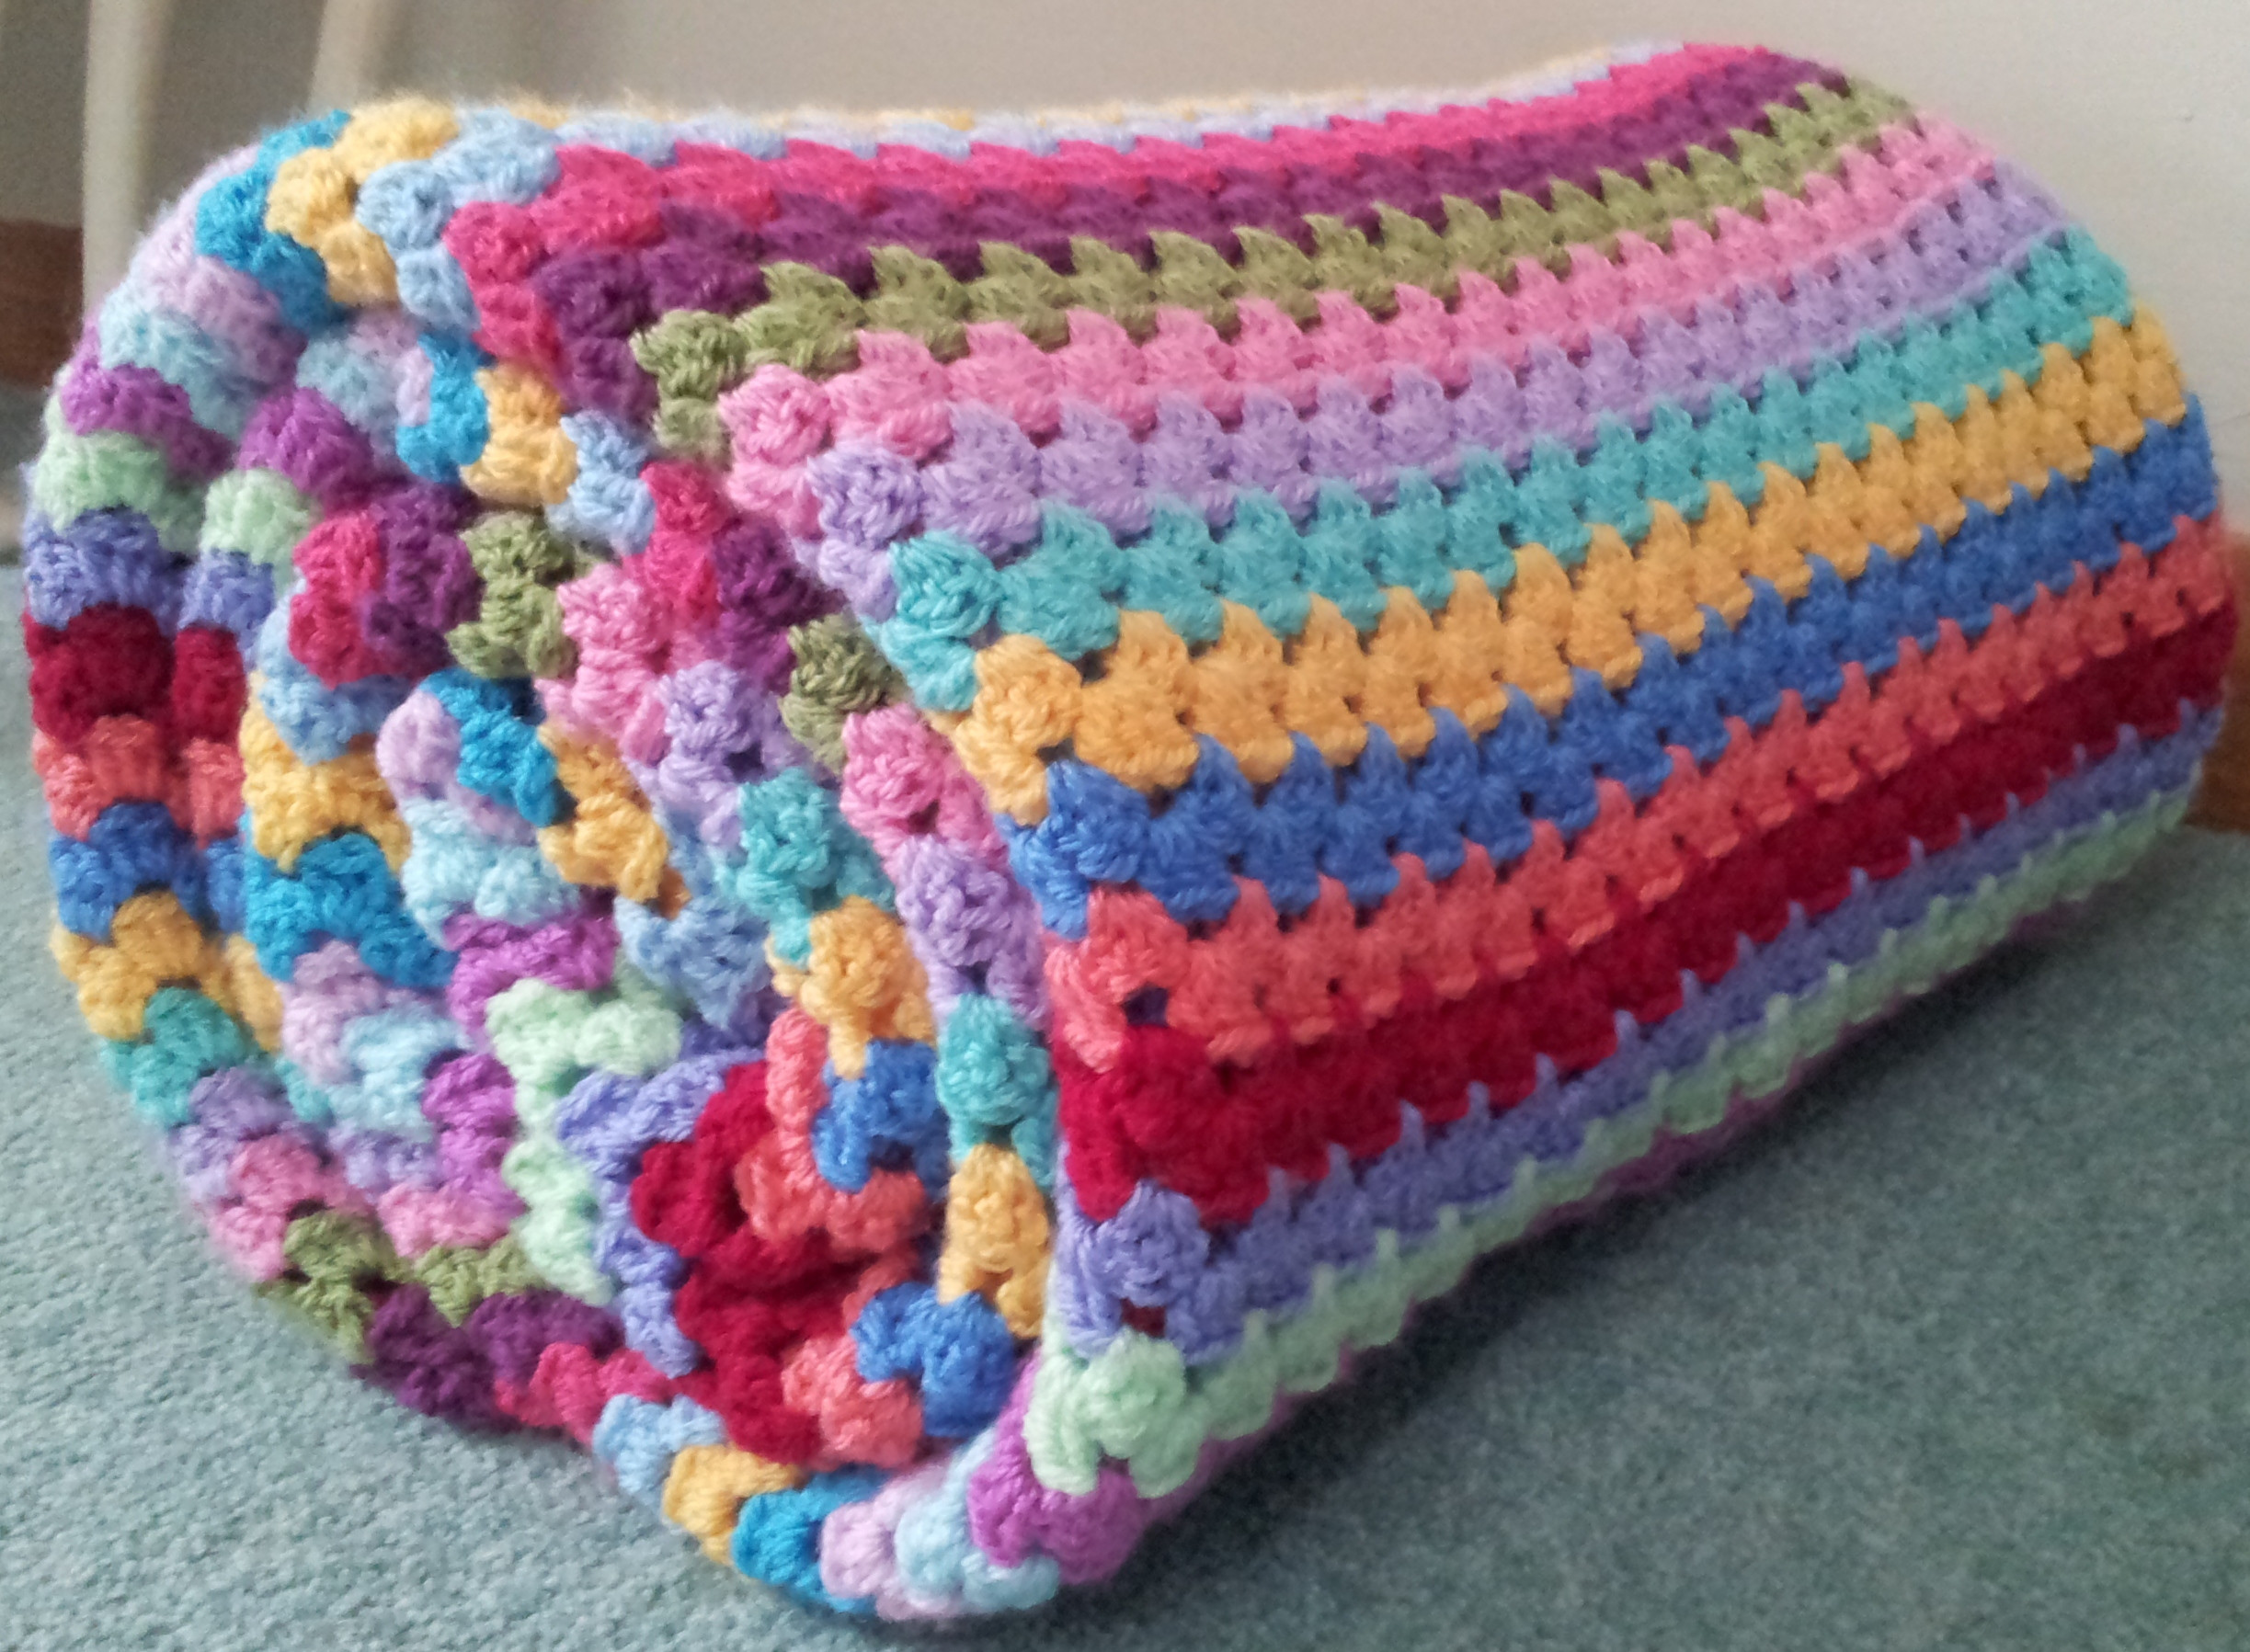 Striped Crochet Baby Blanket Unique attic 24 Granny Stripe Blanket and Edging – Tried and Of Amazing 50 Photos Striped Crochet Baby Blanket